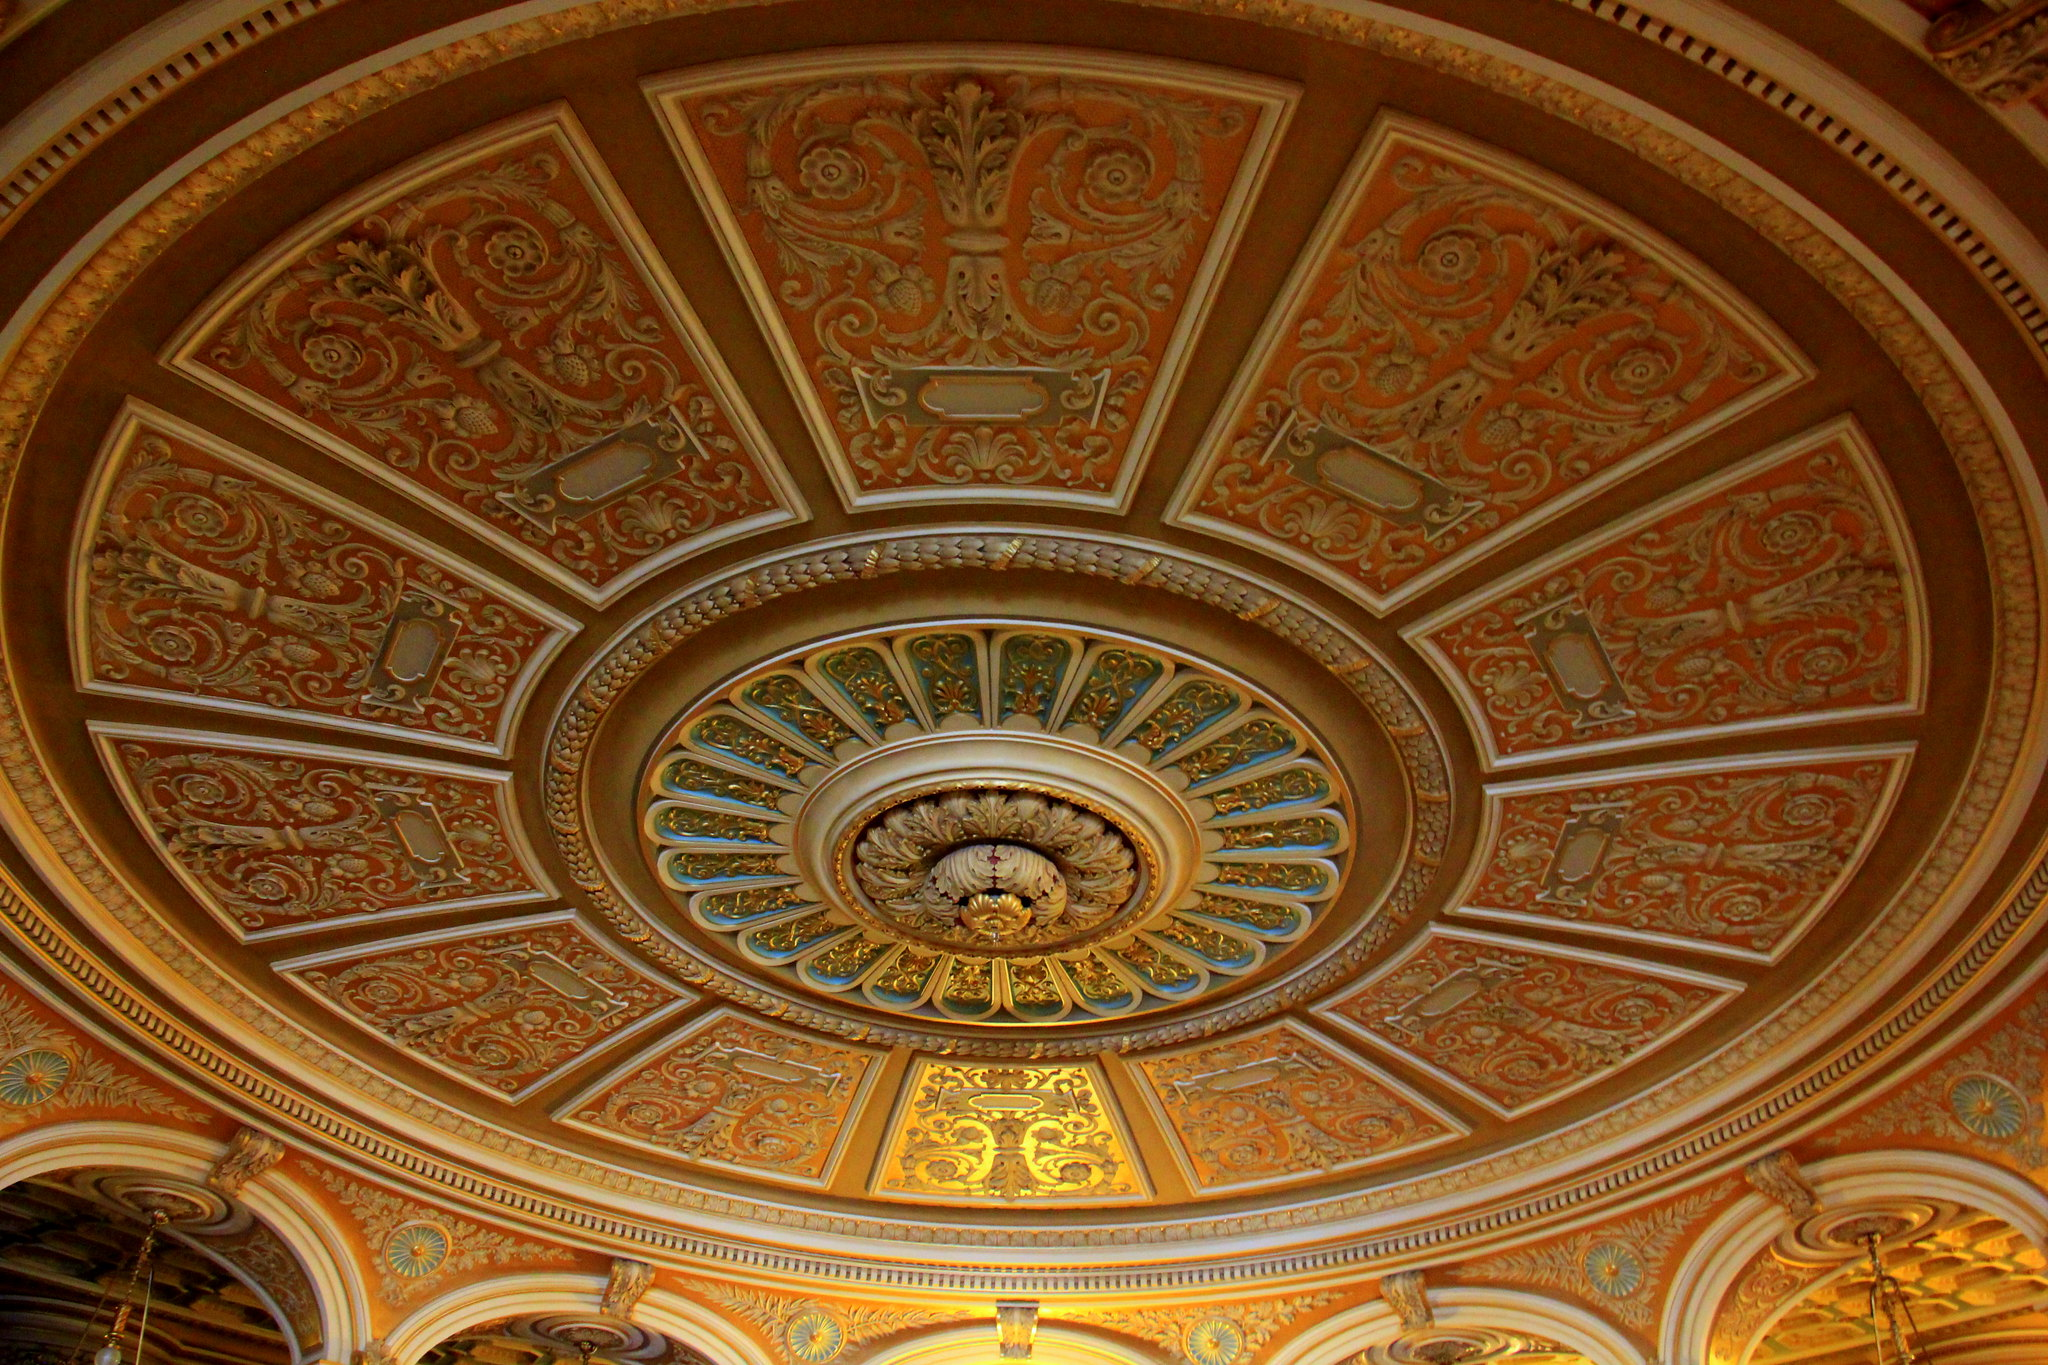 The Romanian Athenaeum was nearly completely built by the money contributed by the local citizens of Bucharest Romania